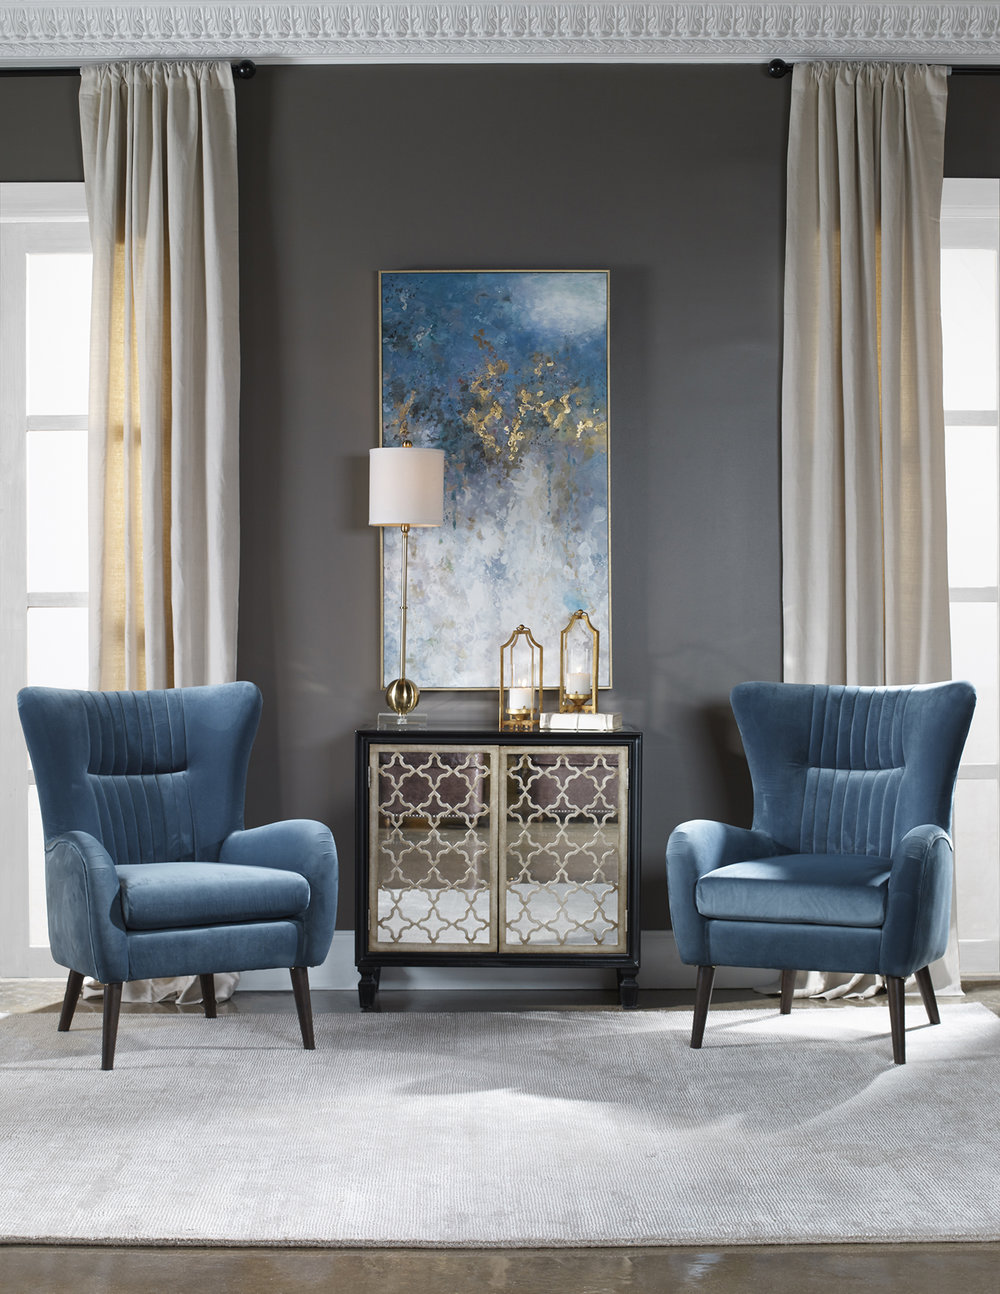 Considering a stain-resistant performance fabric on upholstered items is always a great idea, particularly for those with children or pets. Source: Uttermost.